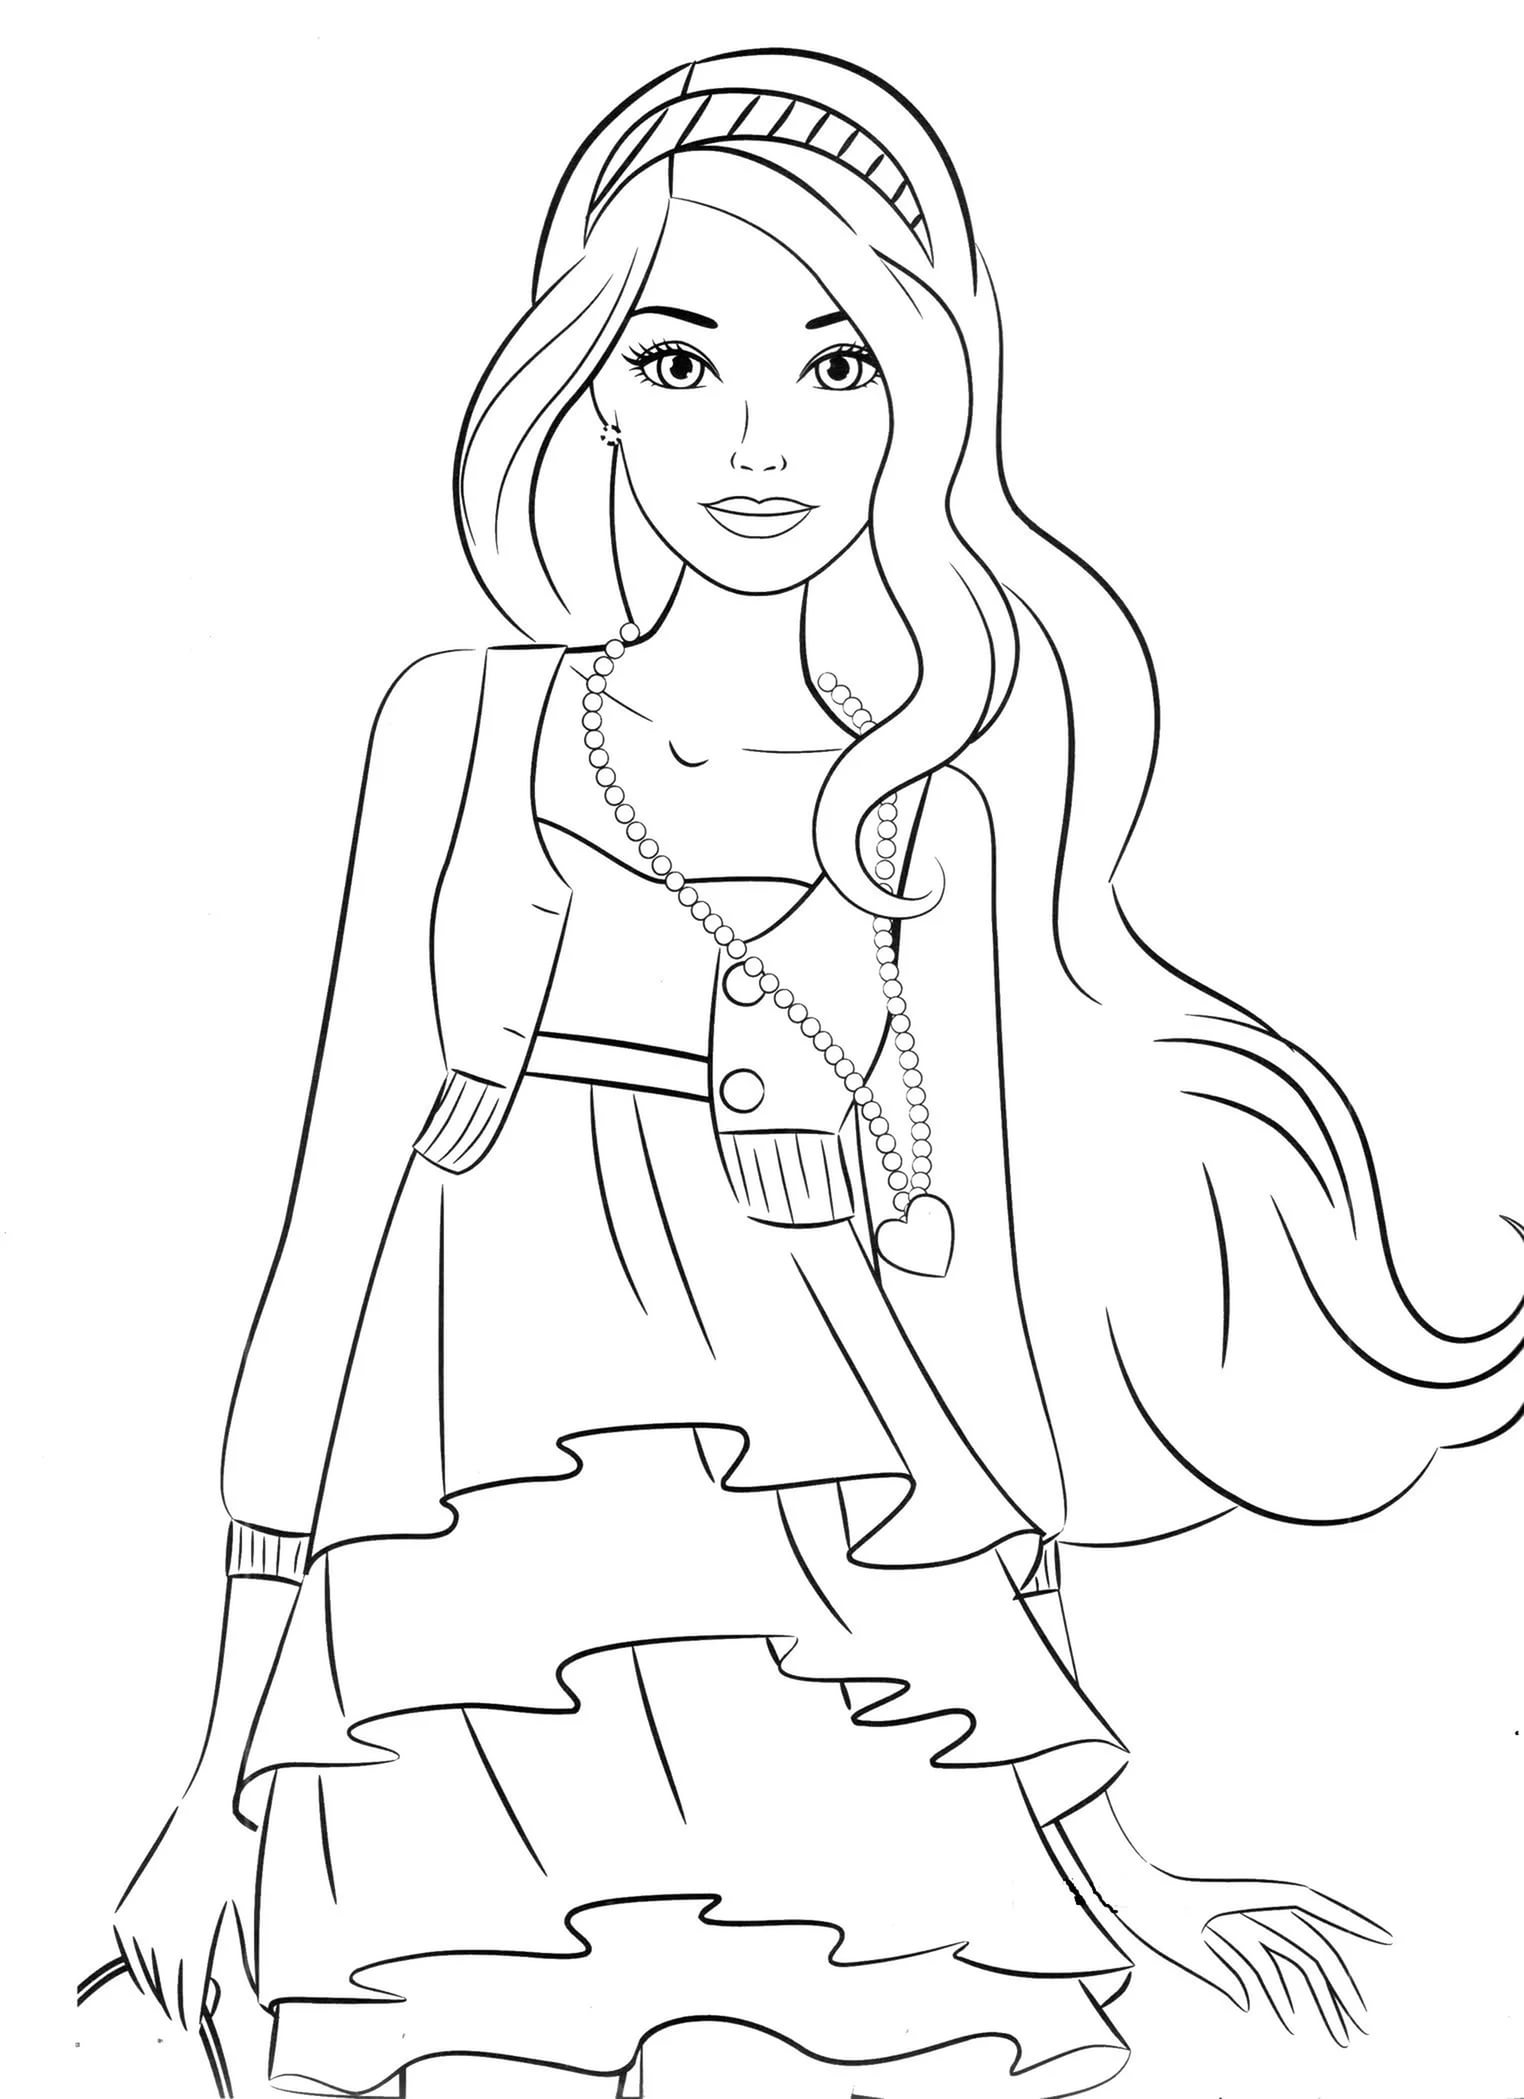 coloring for girls fashion is free fashion week coloring pages wallace girls coloring for